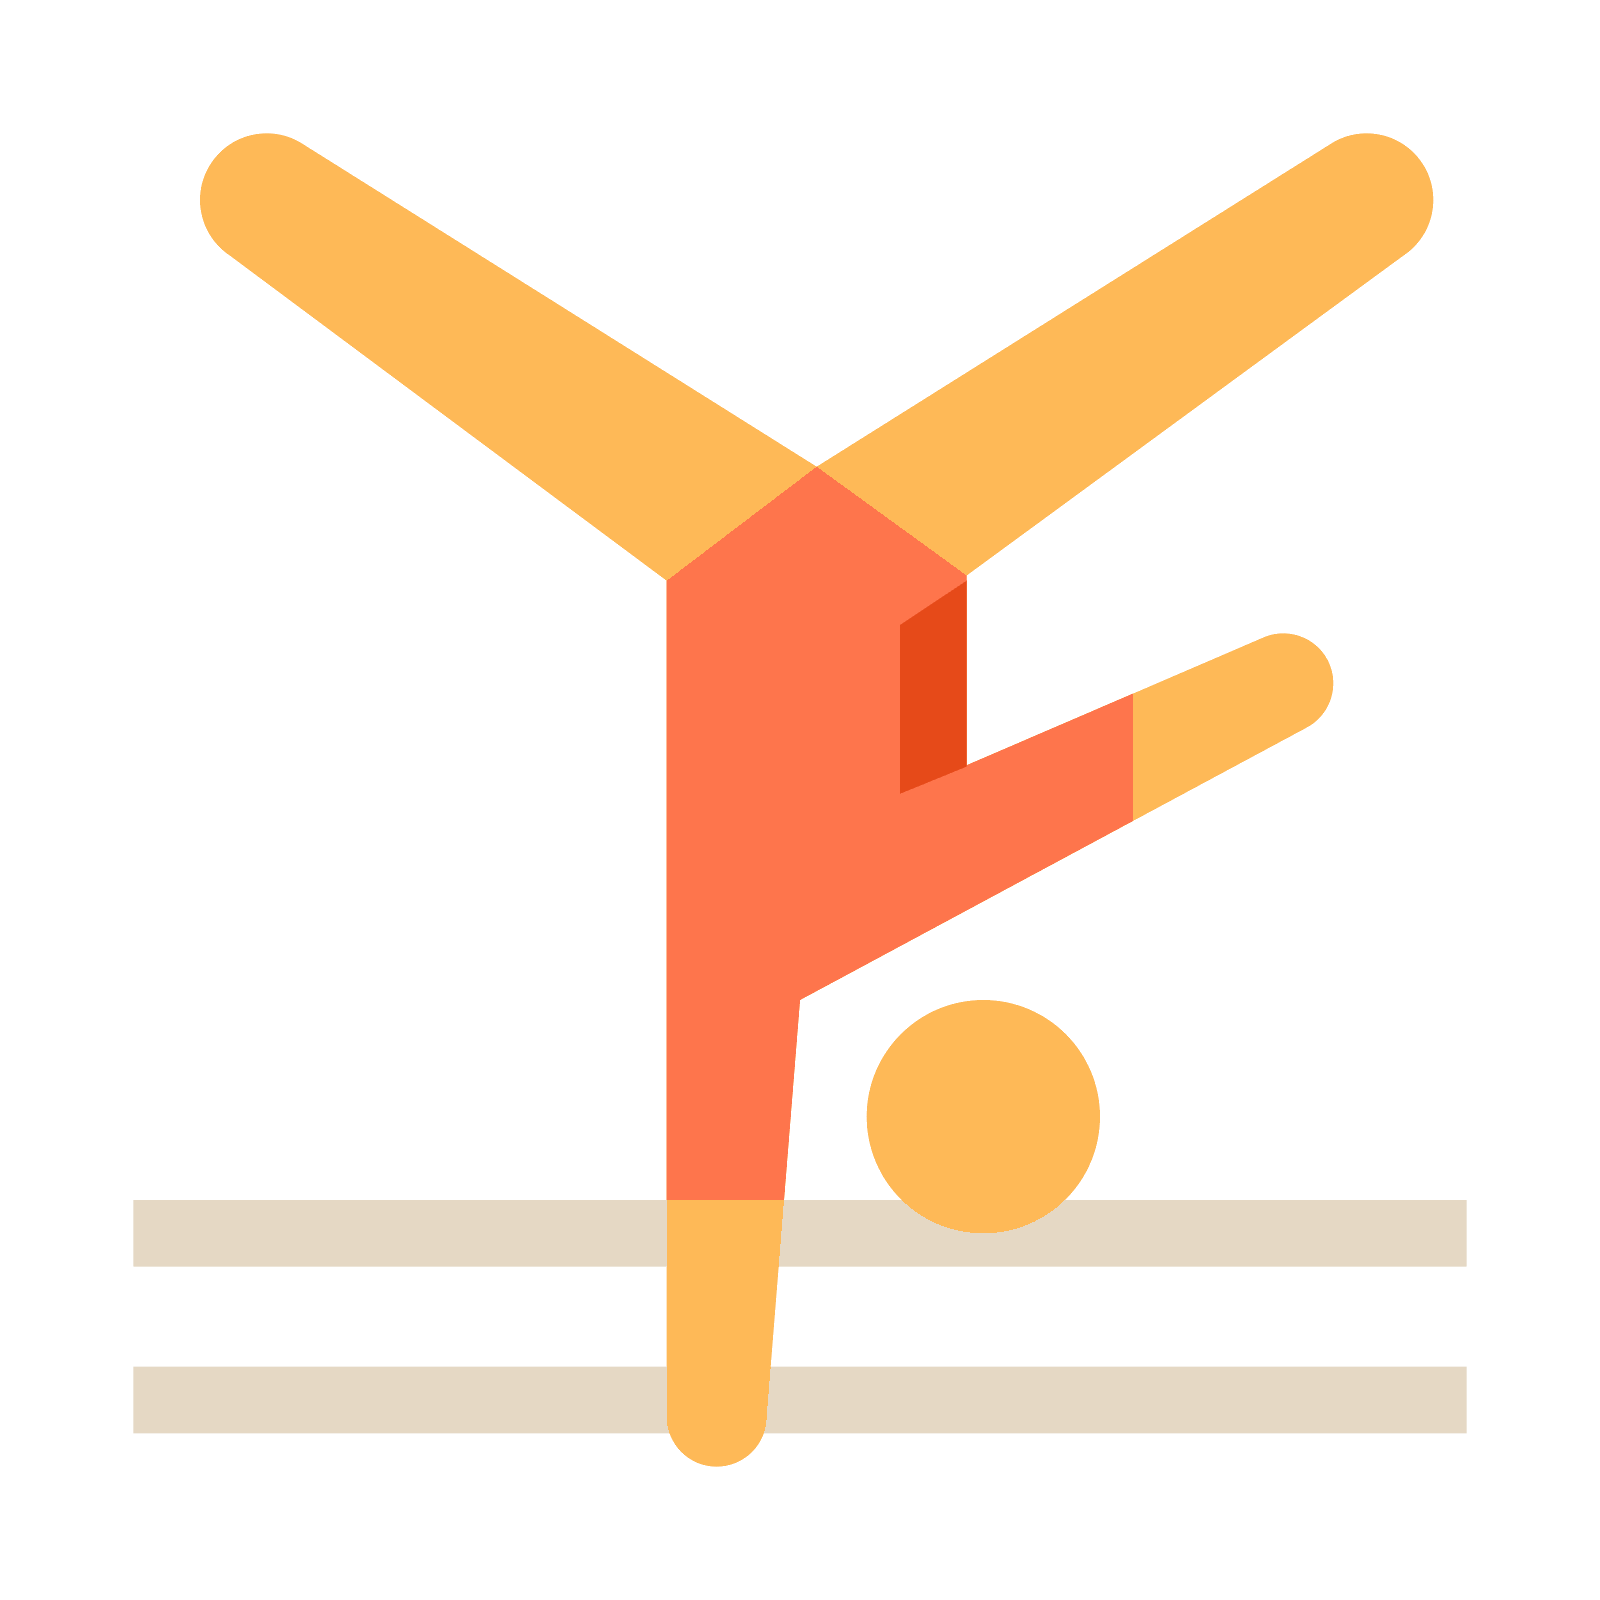 png icon. Exercise clipart aerobic